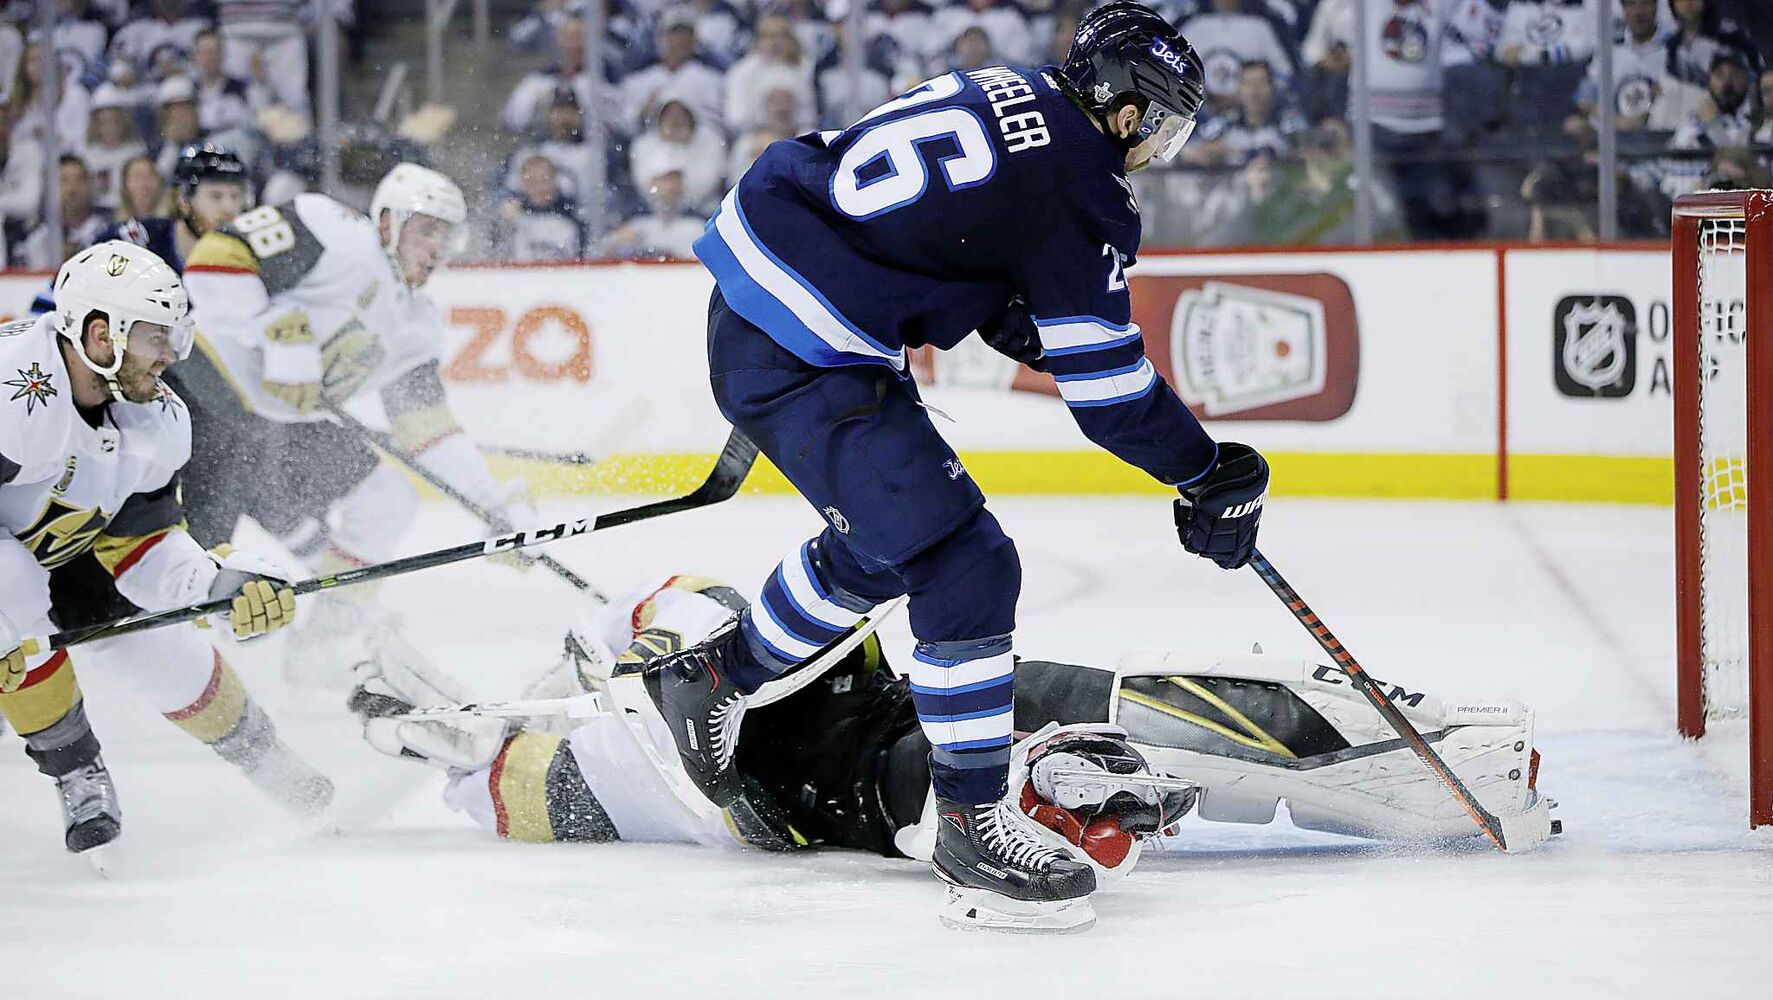 JOHN WOODS / THE CANADIAN PRESS</p><p>Winnipeg Jets' Blake Wheeler (26) beats Vegas Golden Knights goaltender Marc-Andre Fleury (29) but misses the open net during second period of game one action in the NHL Western Conference Final in Winnipeg on Saturday, May 12, 2018.</p>